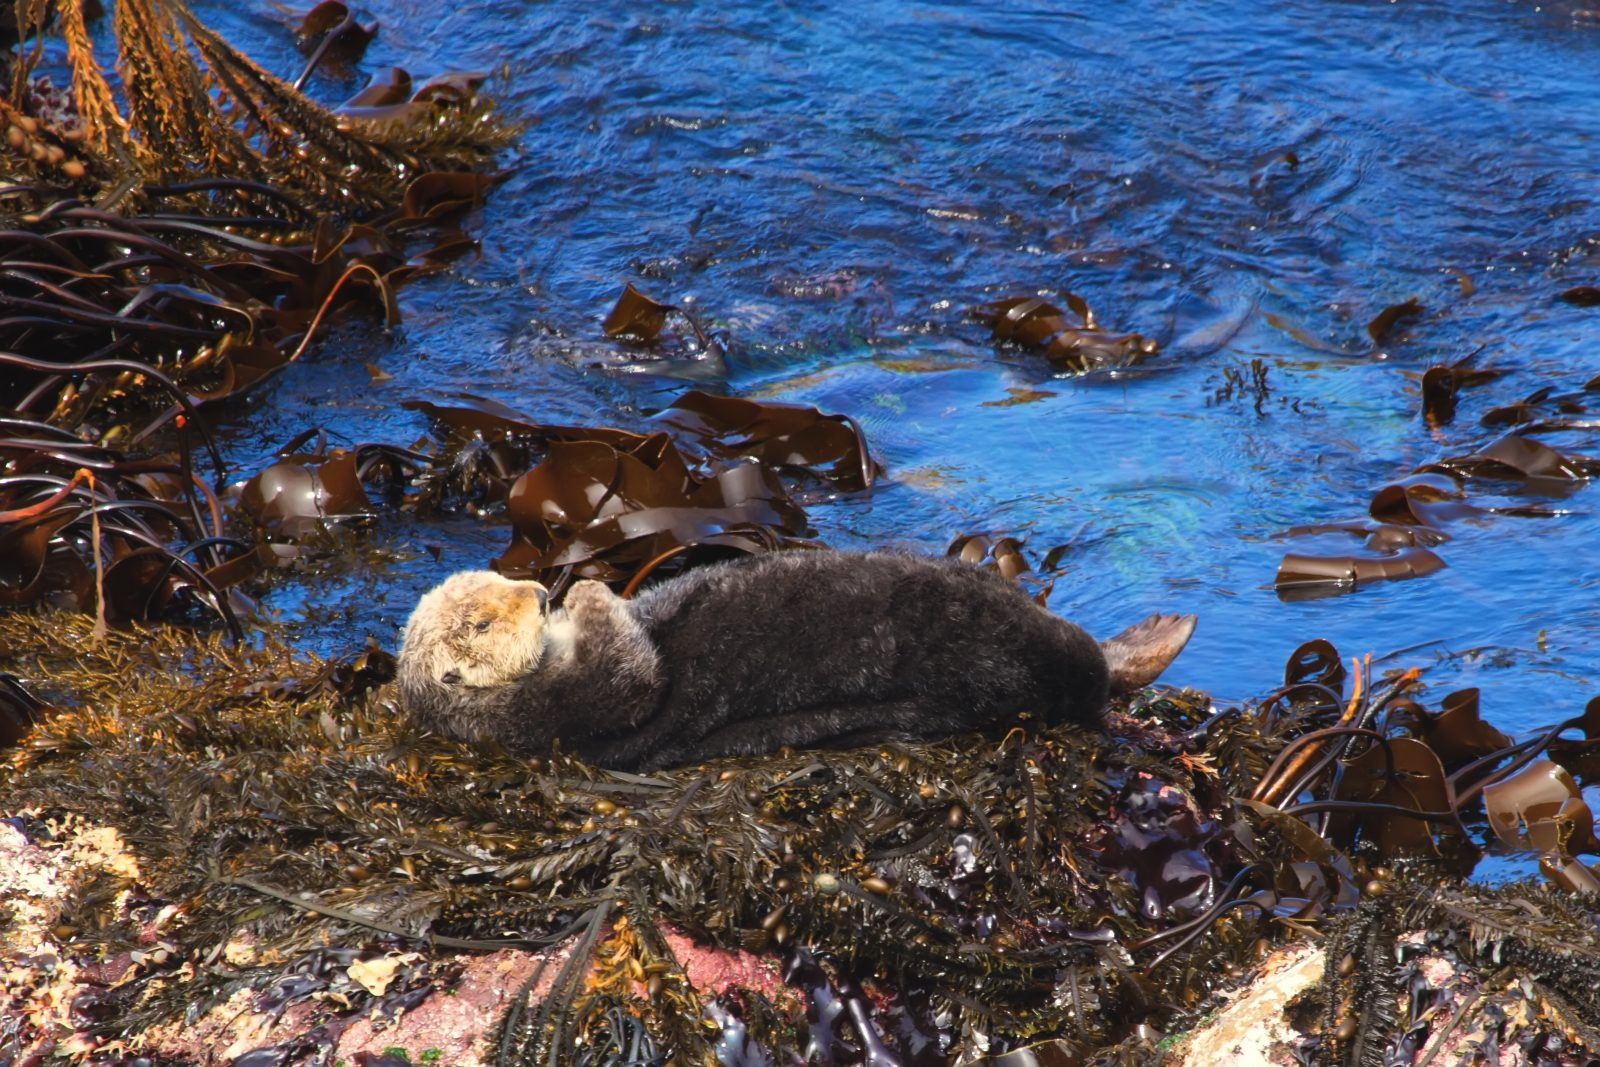 Warm and Furry Sea Otter Sunning on the Rock